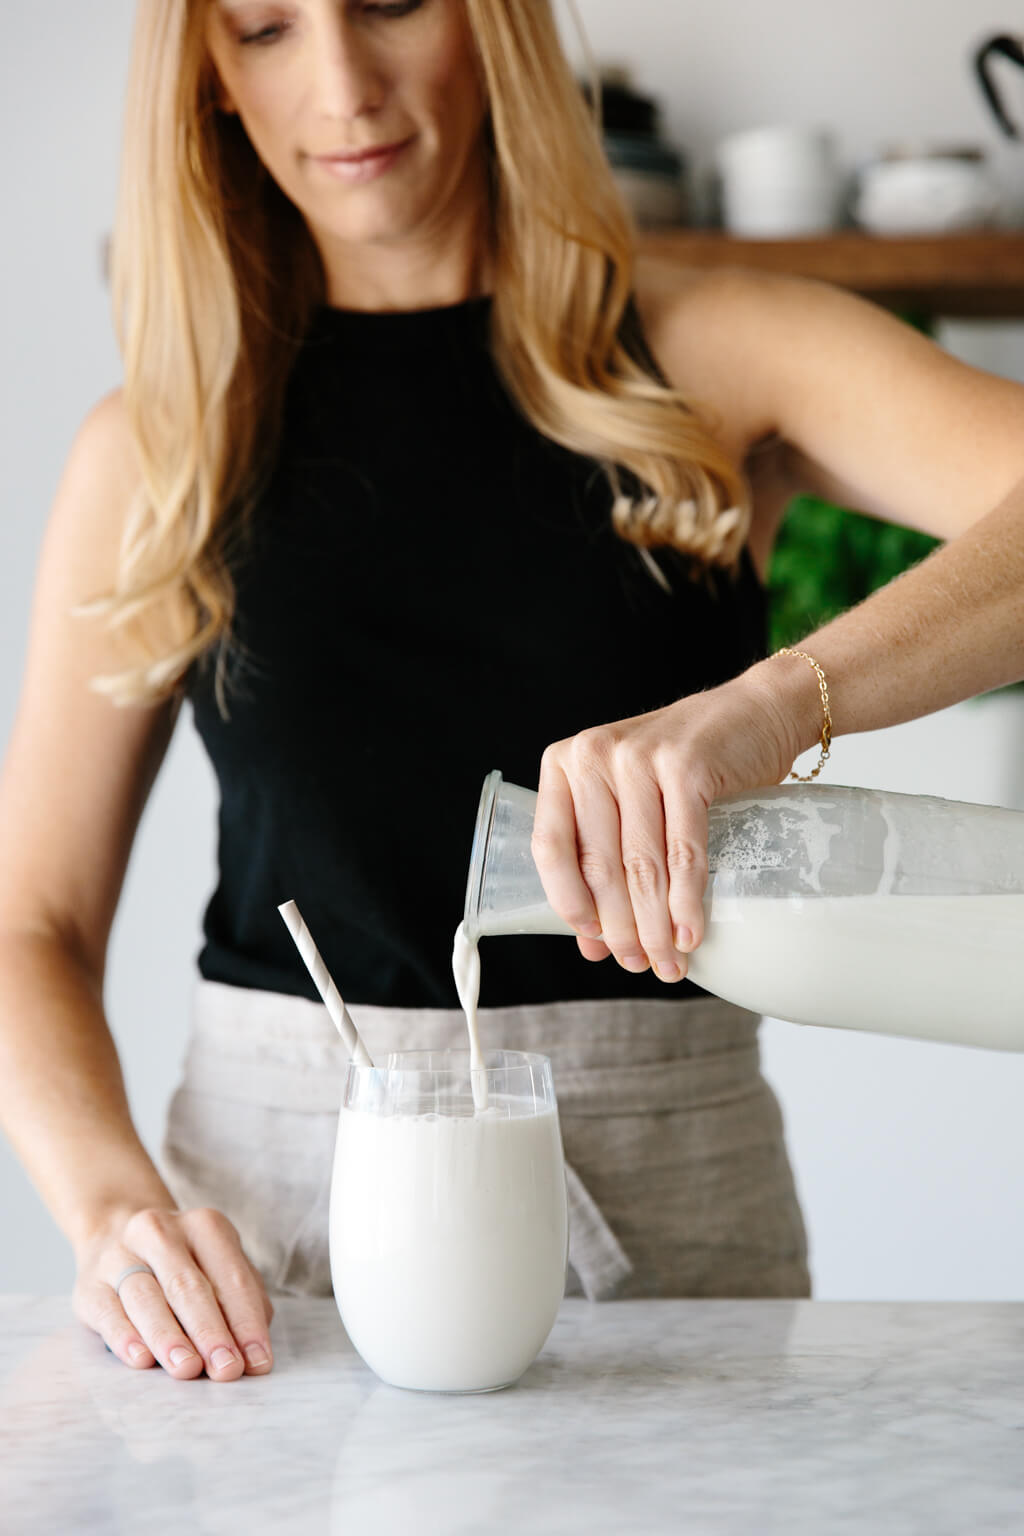 Cashew milk being poured into a glass